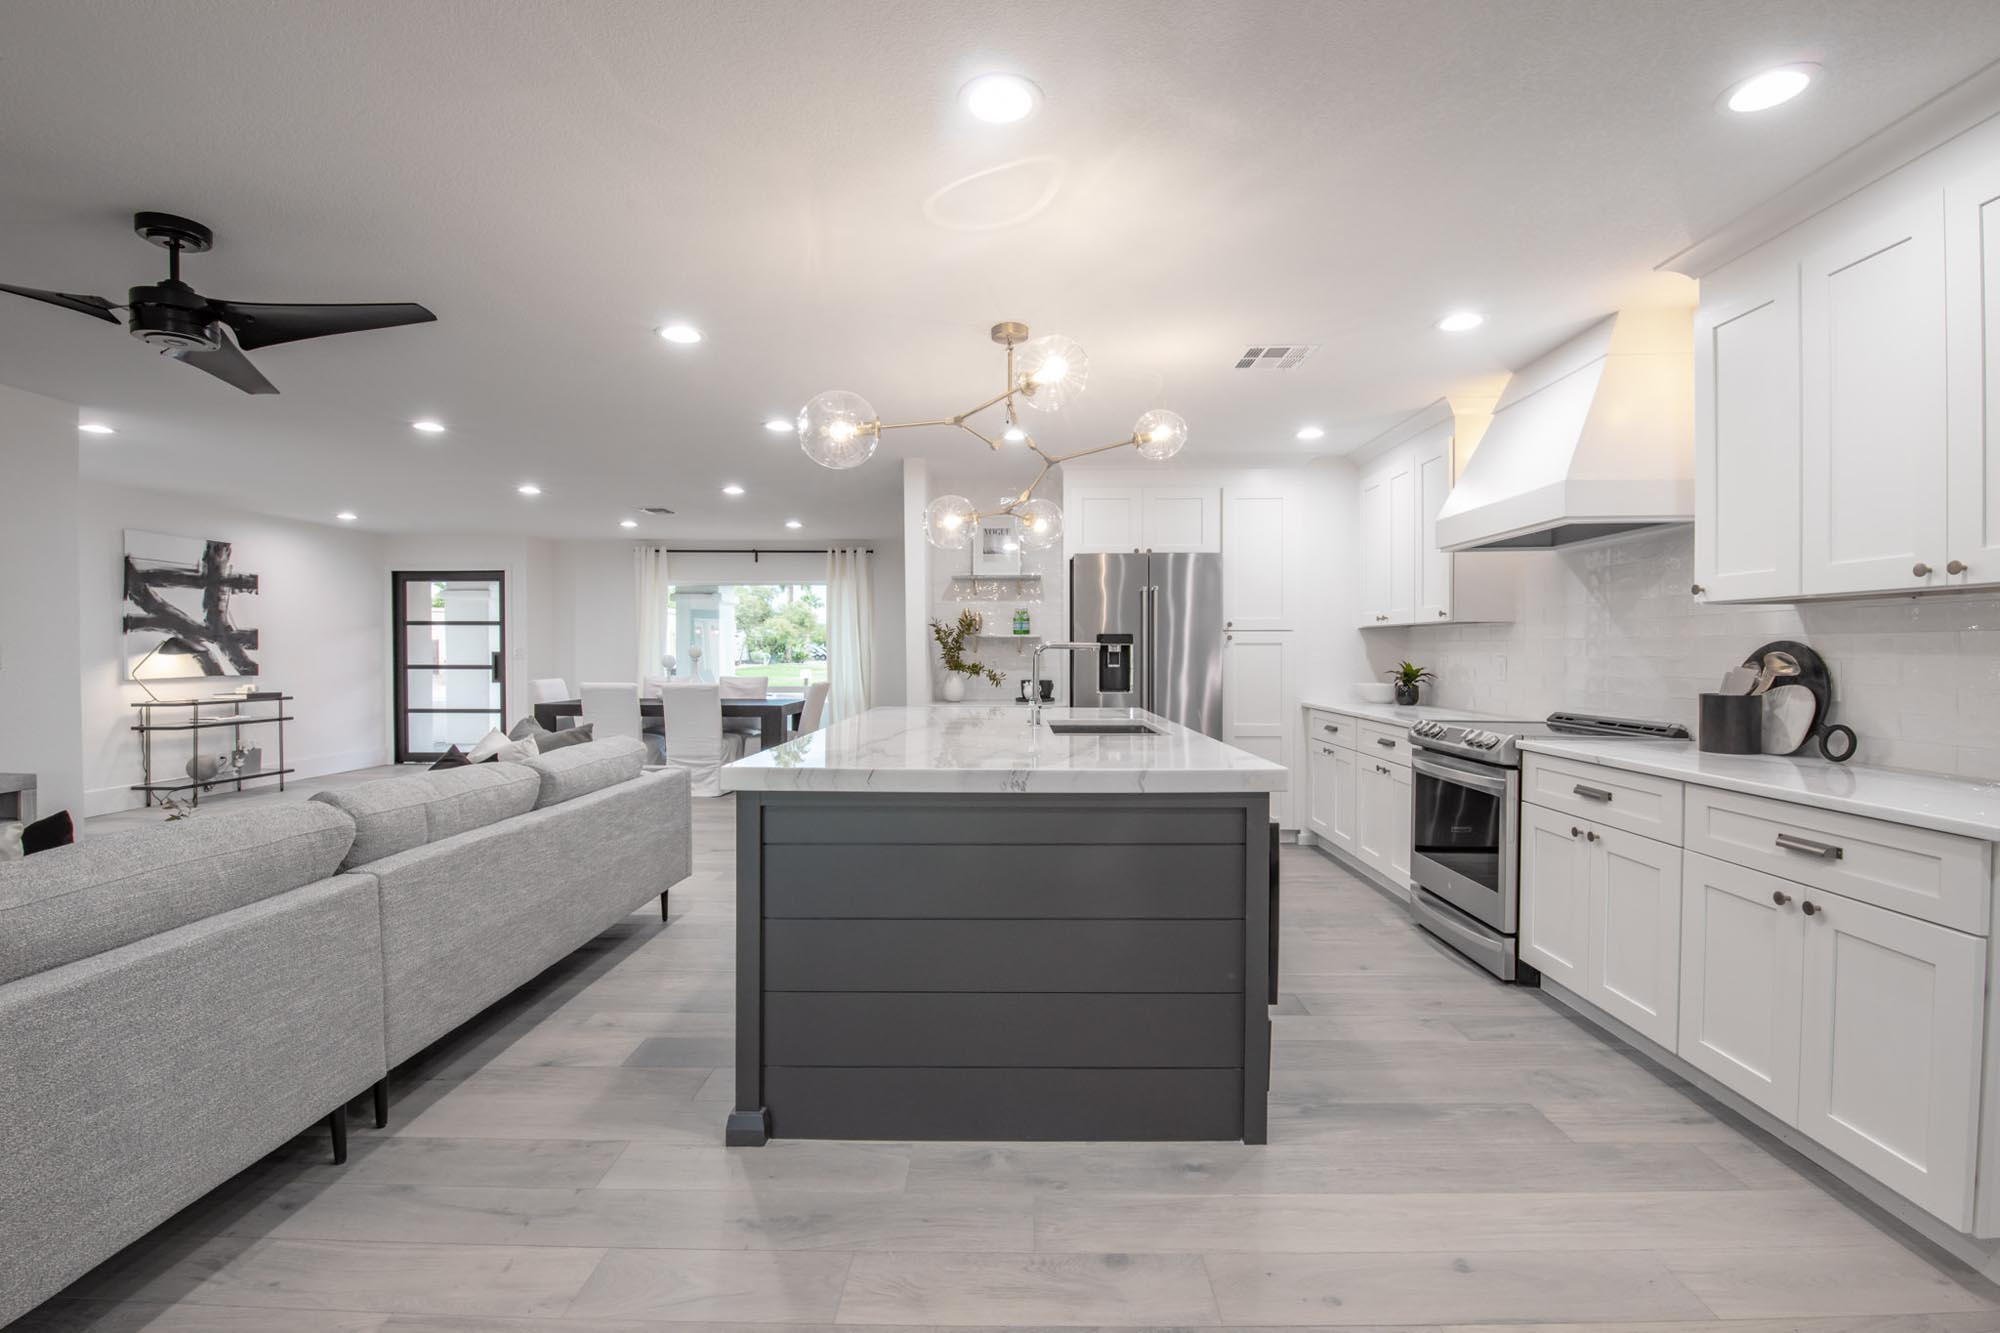 Kitchen area with island and white cabinets